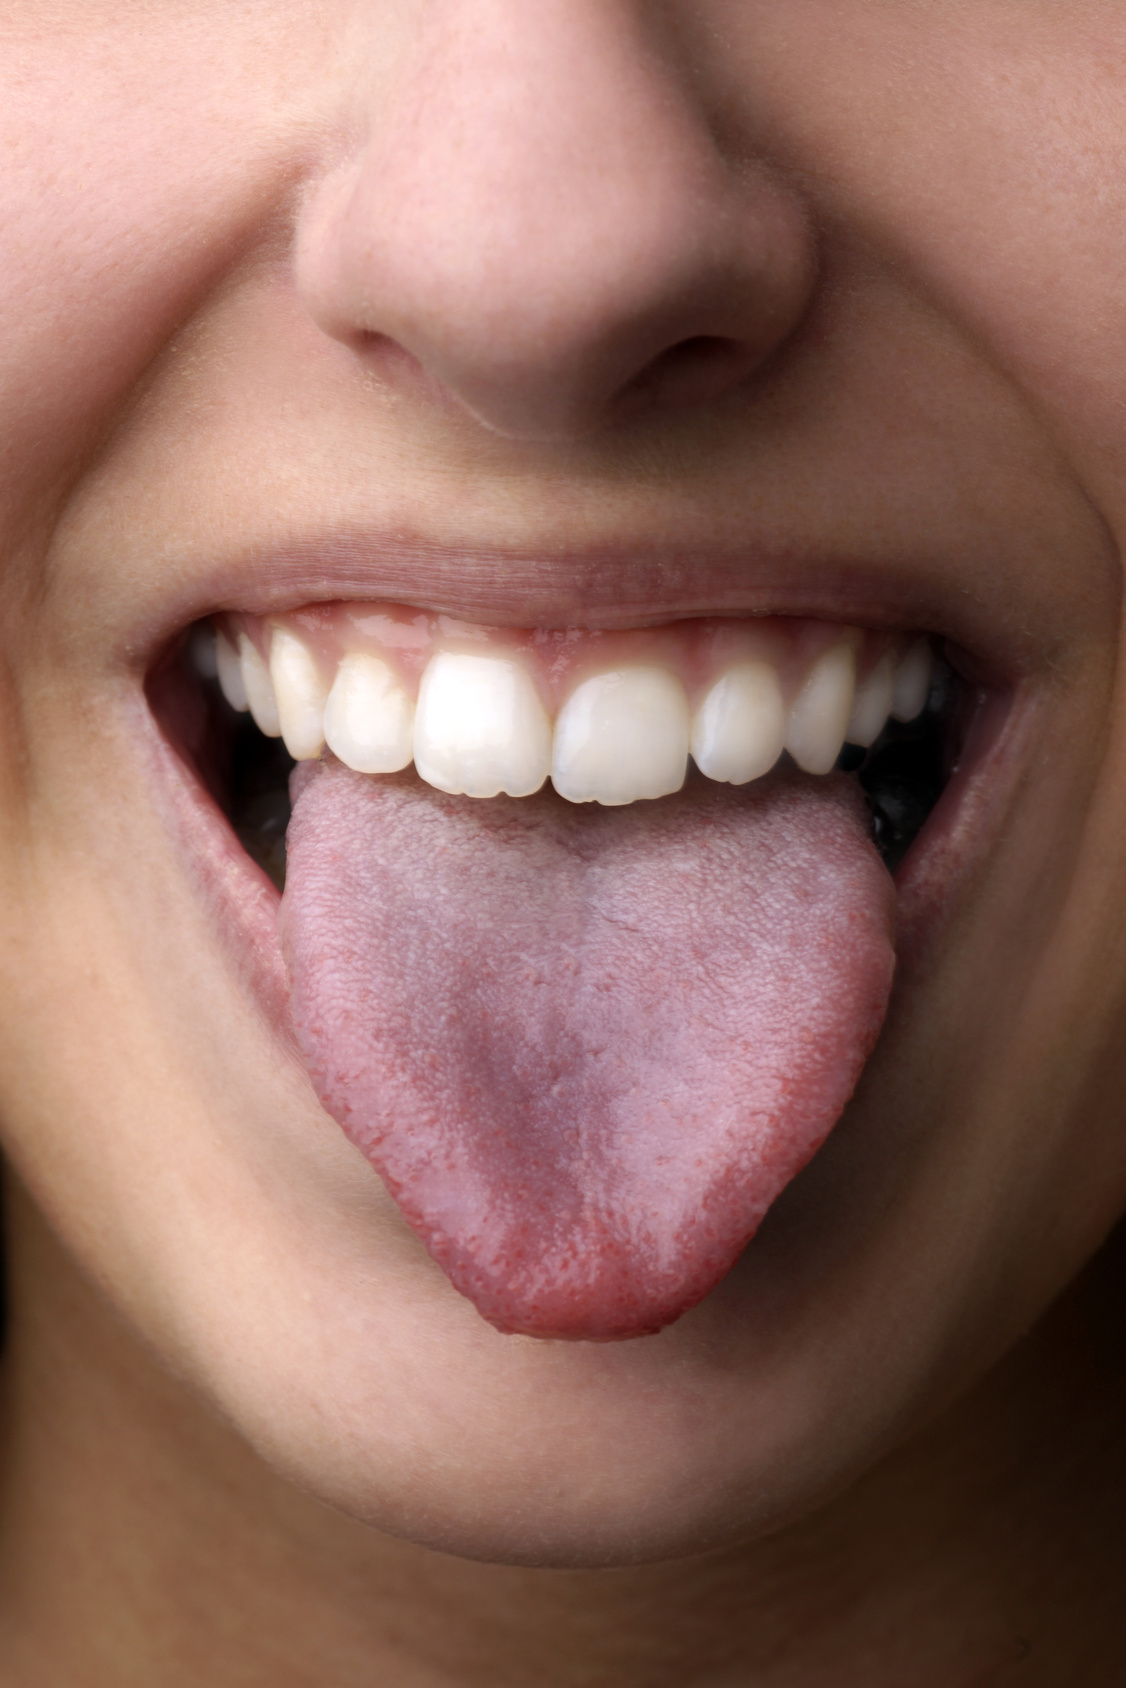 Acid Reflux On Tongue Tongue and throat symptoms are